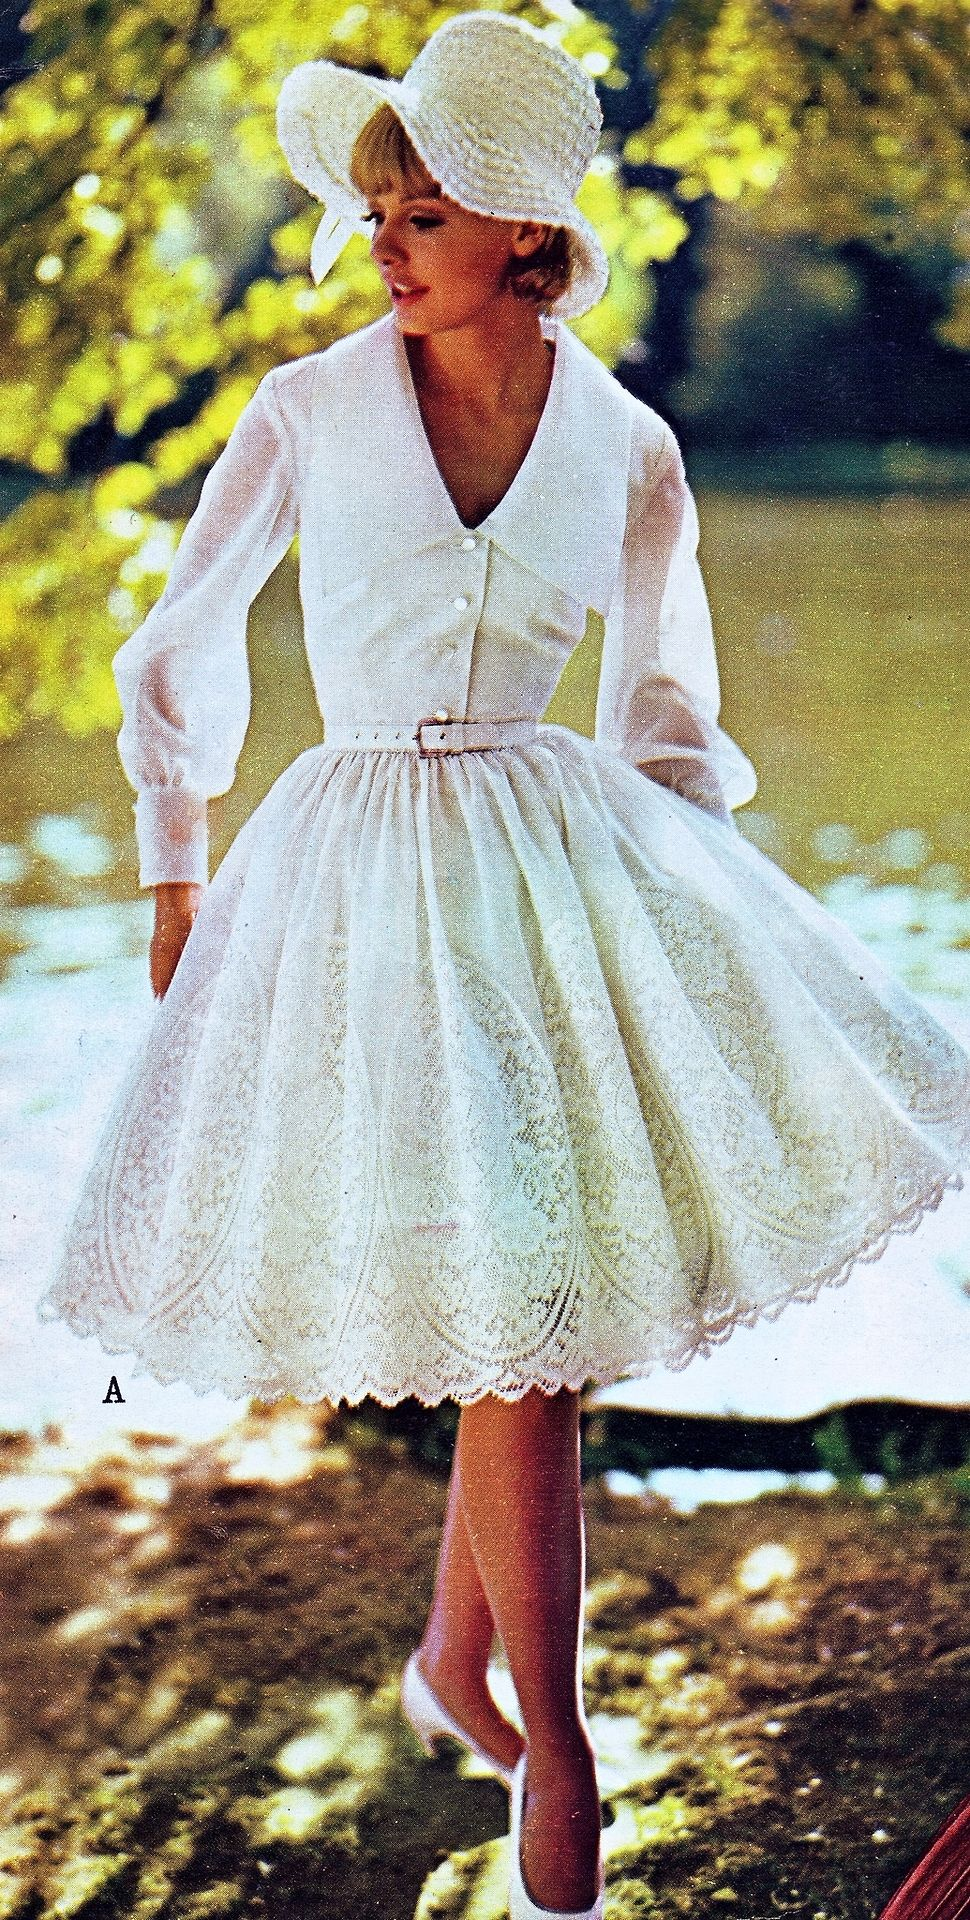 White Lace Dress In The Spring Summer Ward Catalog 1965 Lace White Dress Lace Spring Dress Vintage Dresses [ 1920 x 970 Pixel ]